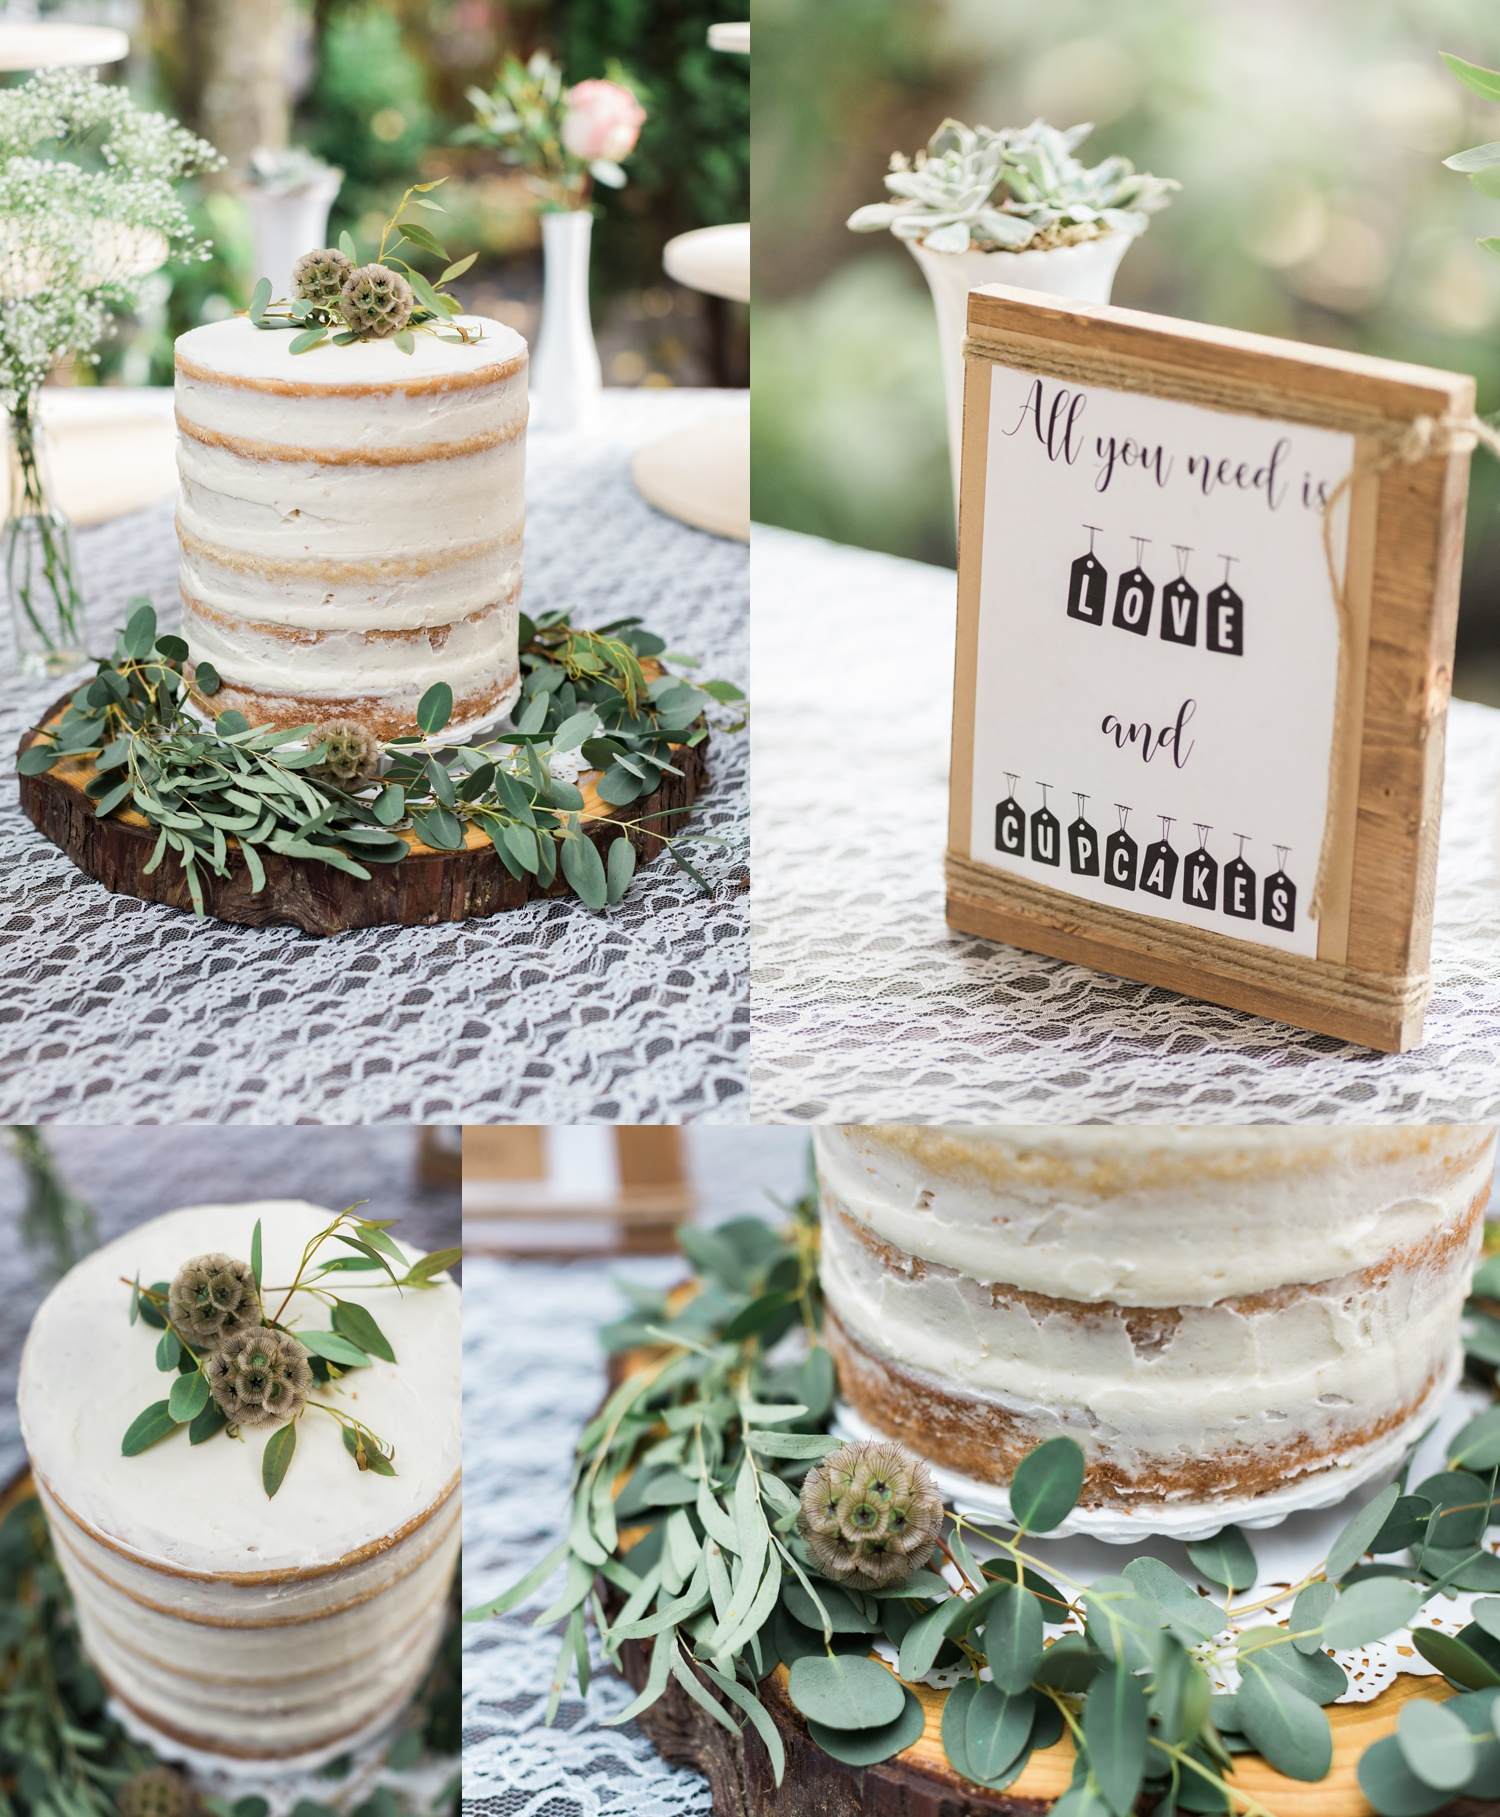 A gorgeous naked wedding cake for a summer wedding at Maroni Meadows in Snohomish, a wedding venue near Seattle, WA. | Joanna Monger Photography | Seattle & Snohomish Photographer